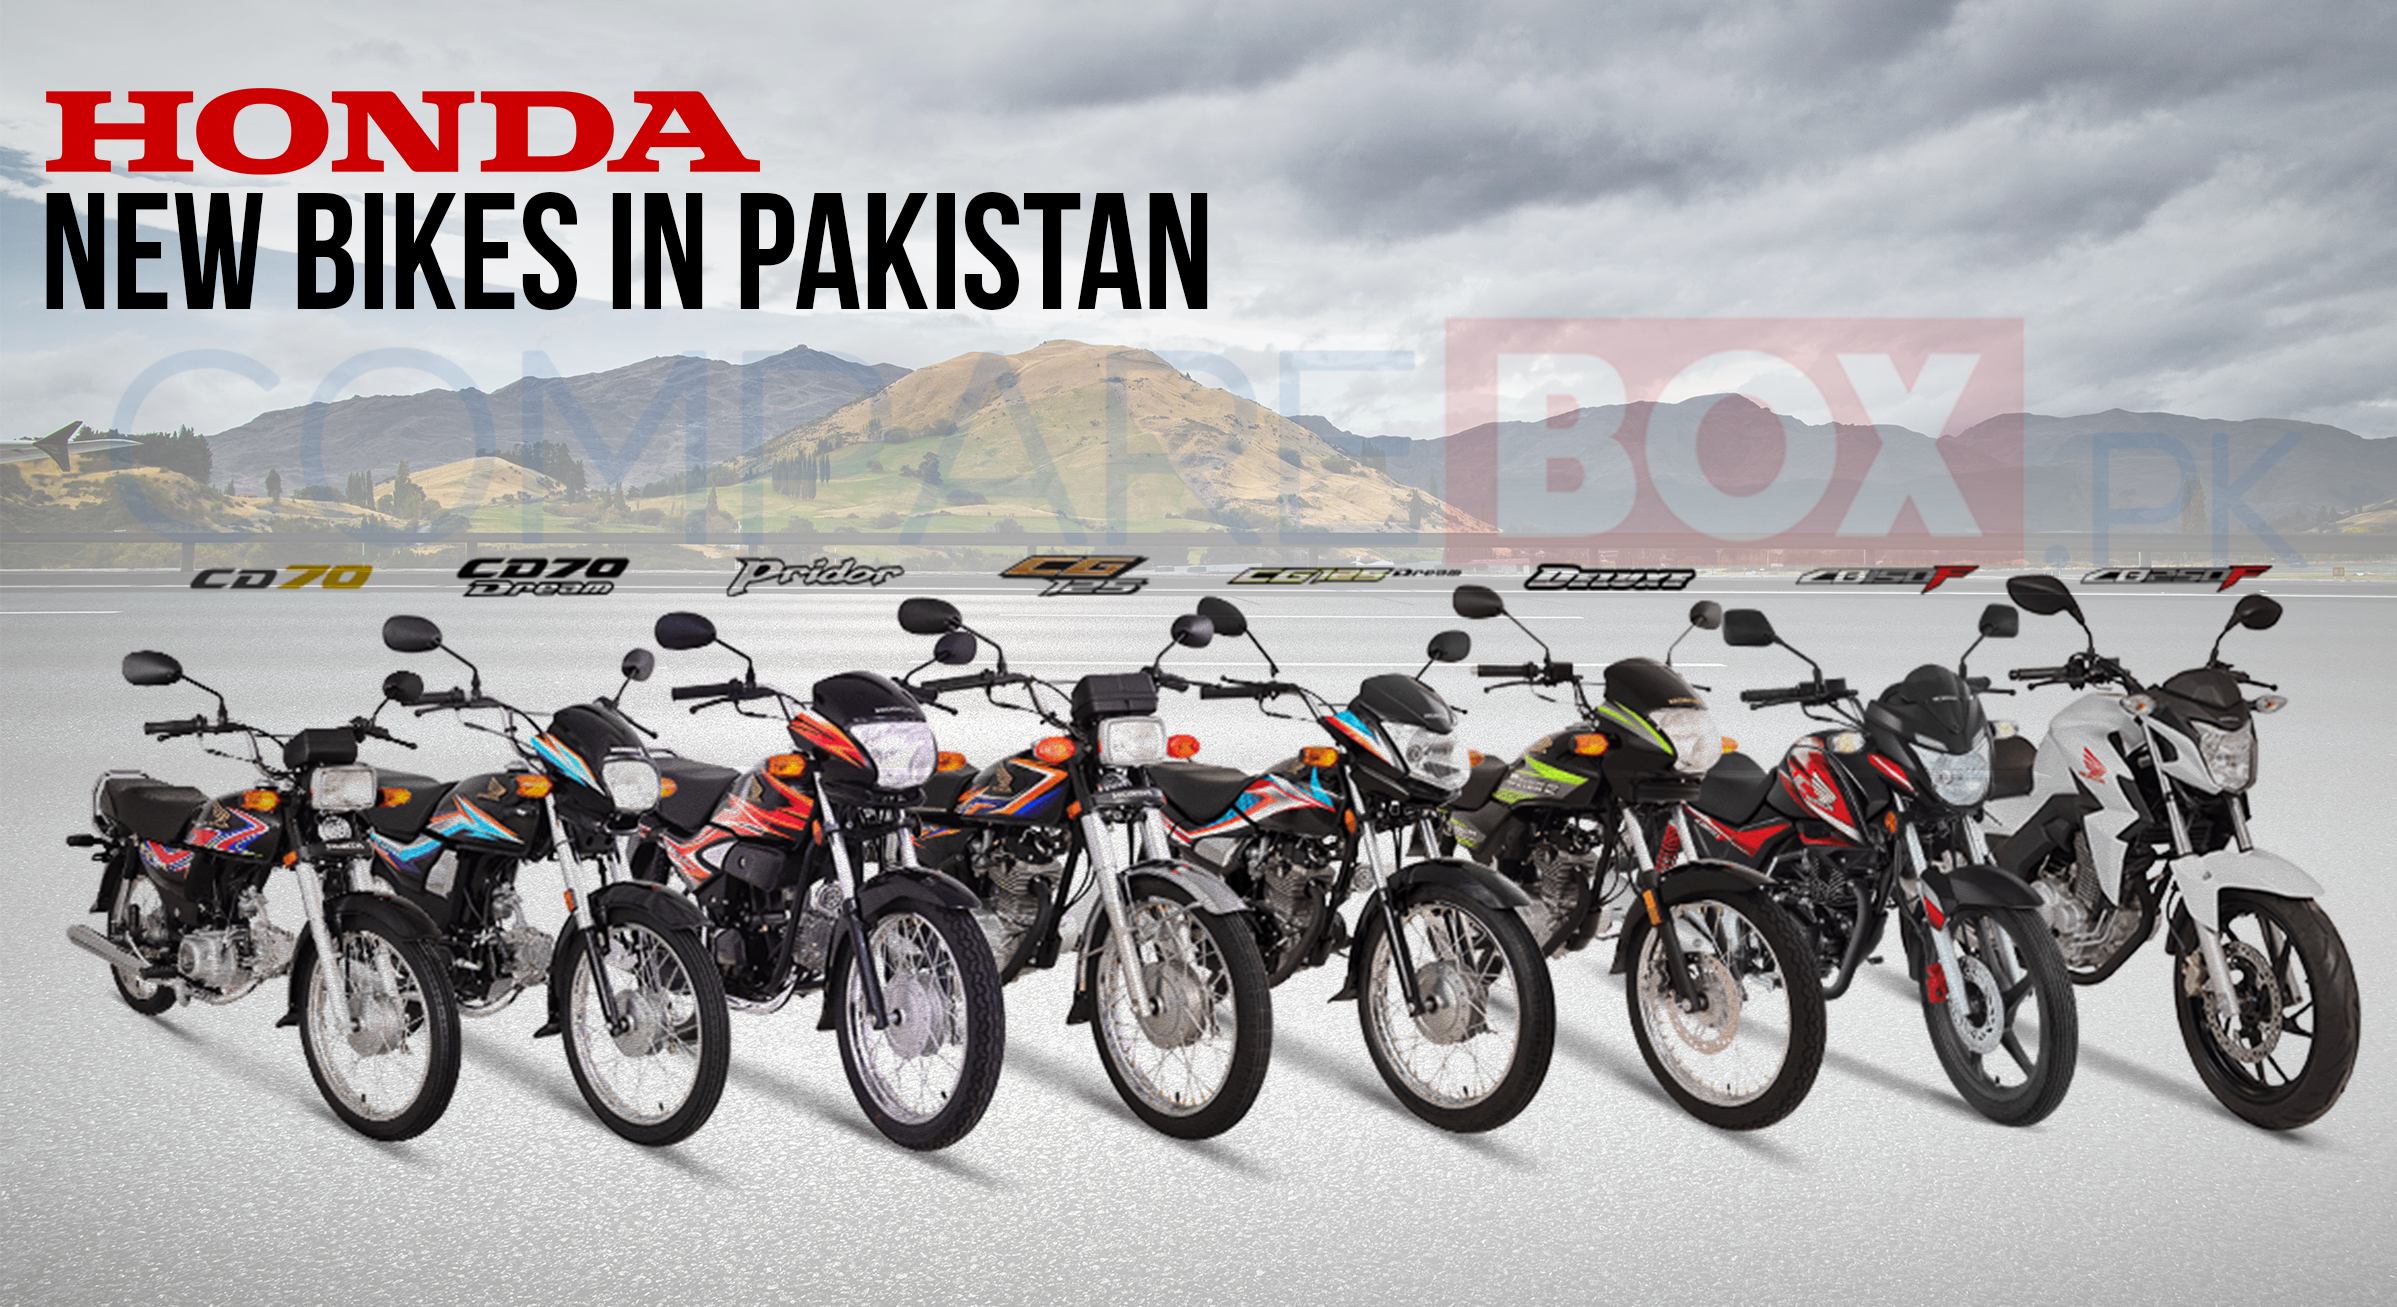 Honda New bikes in Pakistan Honda new bike, Honda, Bike